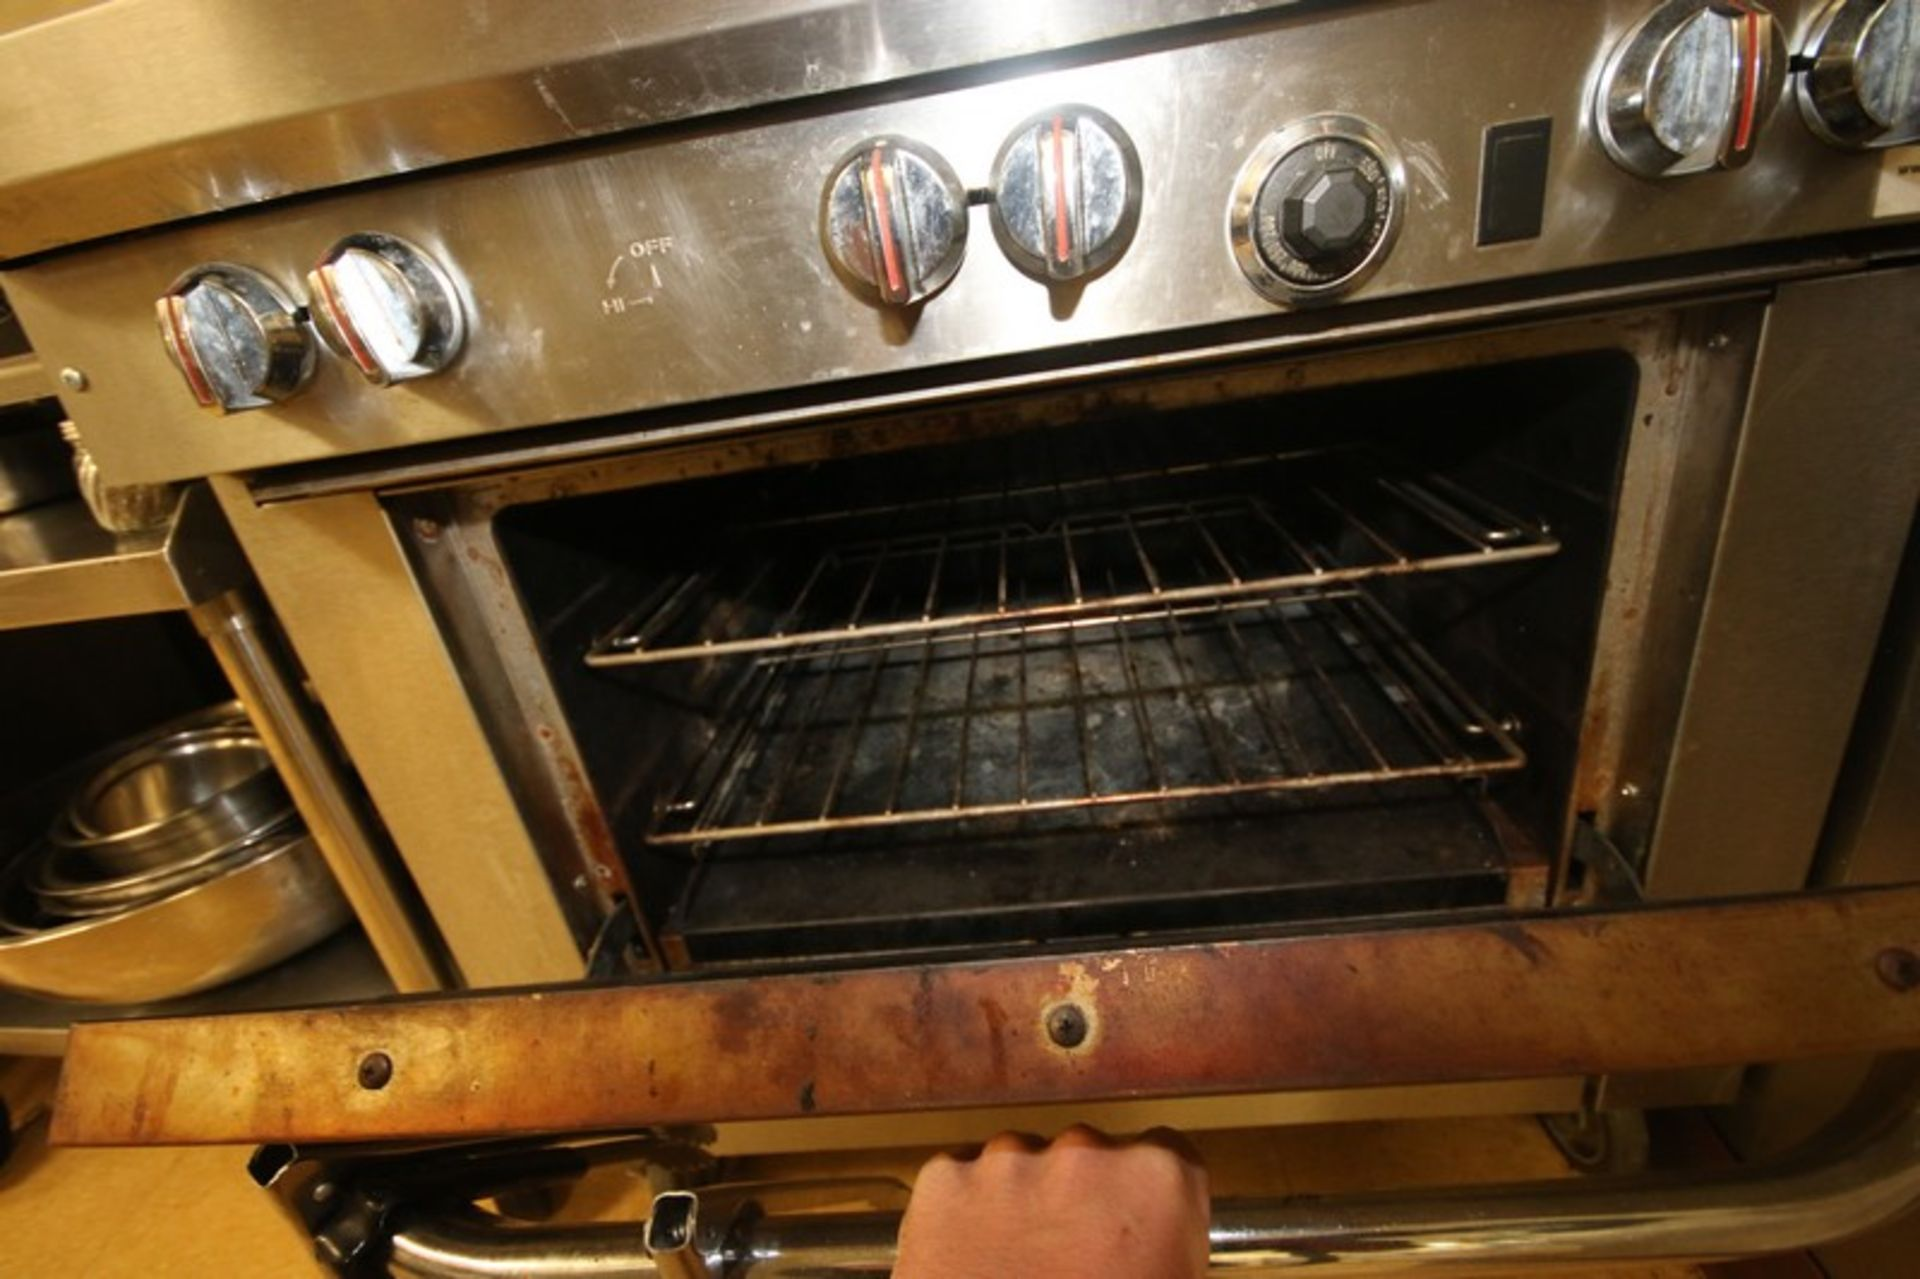 Southbend S/S 6-Burner Stove Top & Oven, S/N 10K13111, with S/S Top Shelf, Mounted on Portable Frame - Image 5 of 5